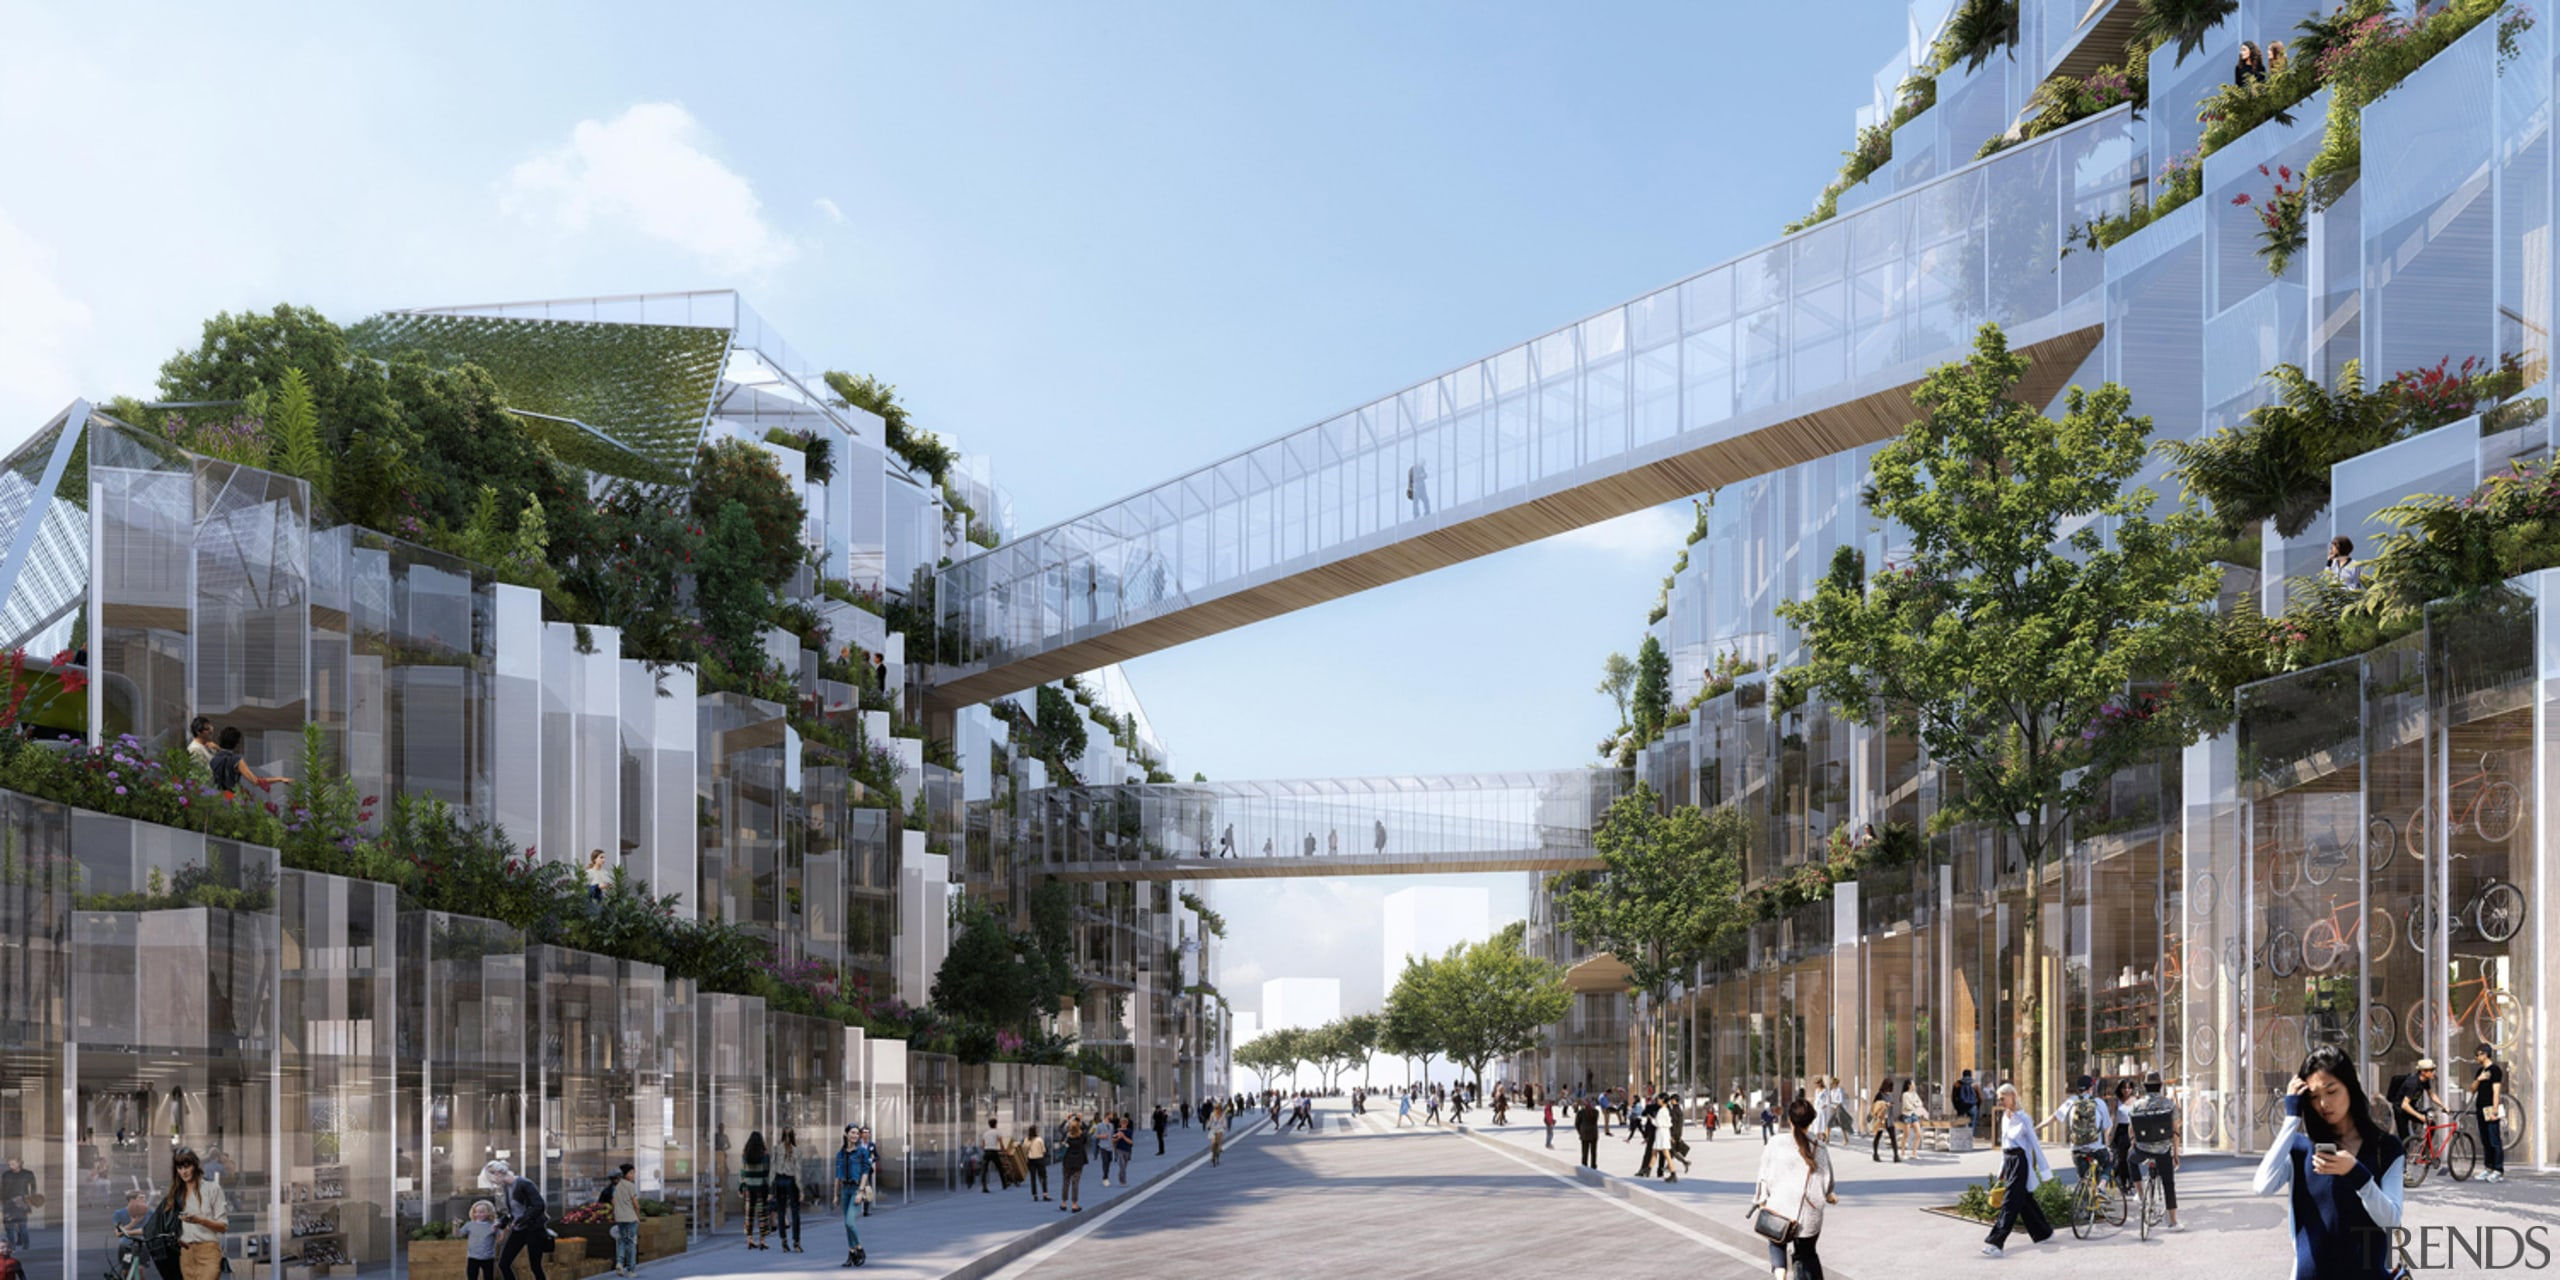 Sky bridges were an important part of the architecture, building, city, metropolitan area, mixed use, structure, tree, urban design, teal